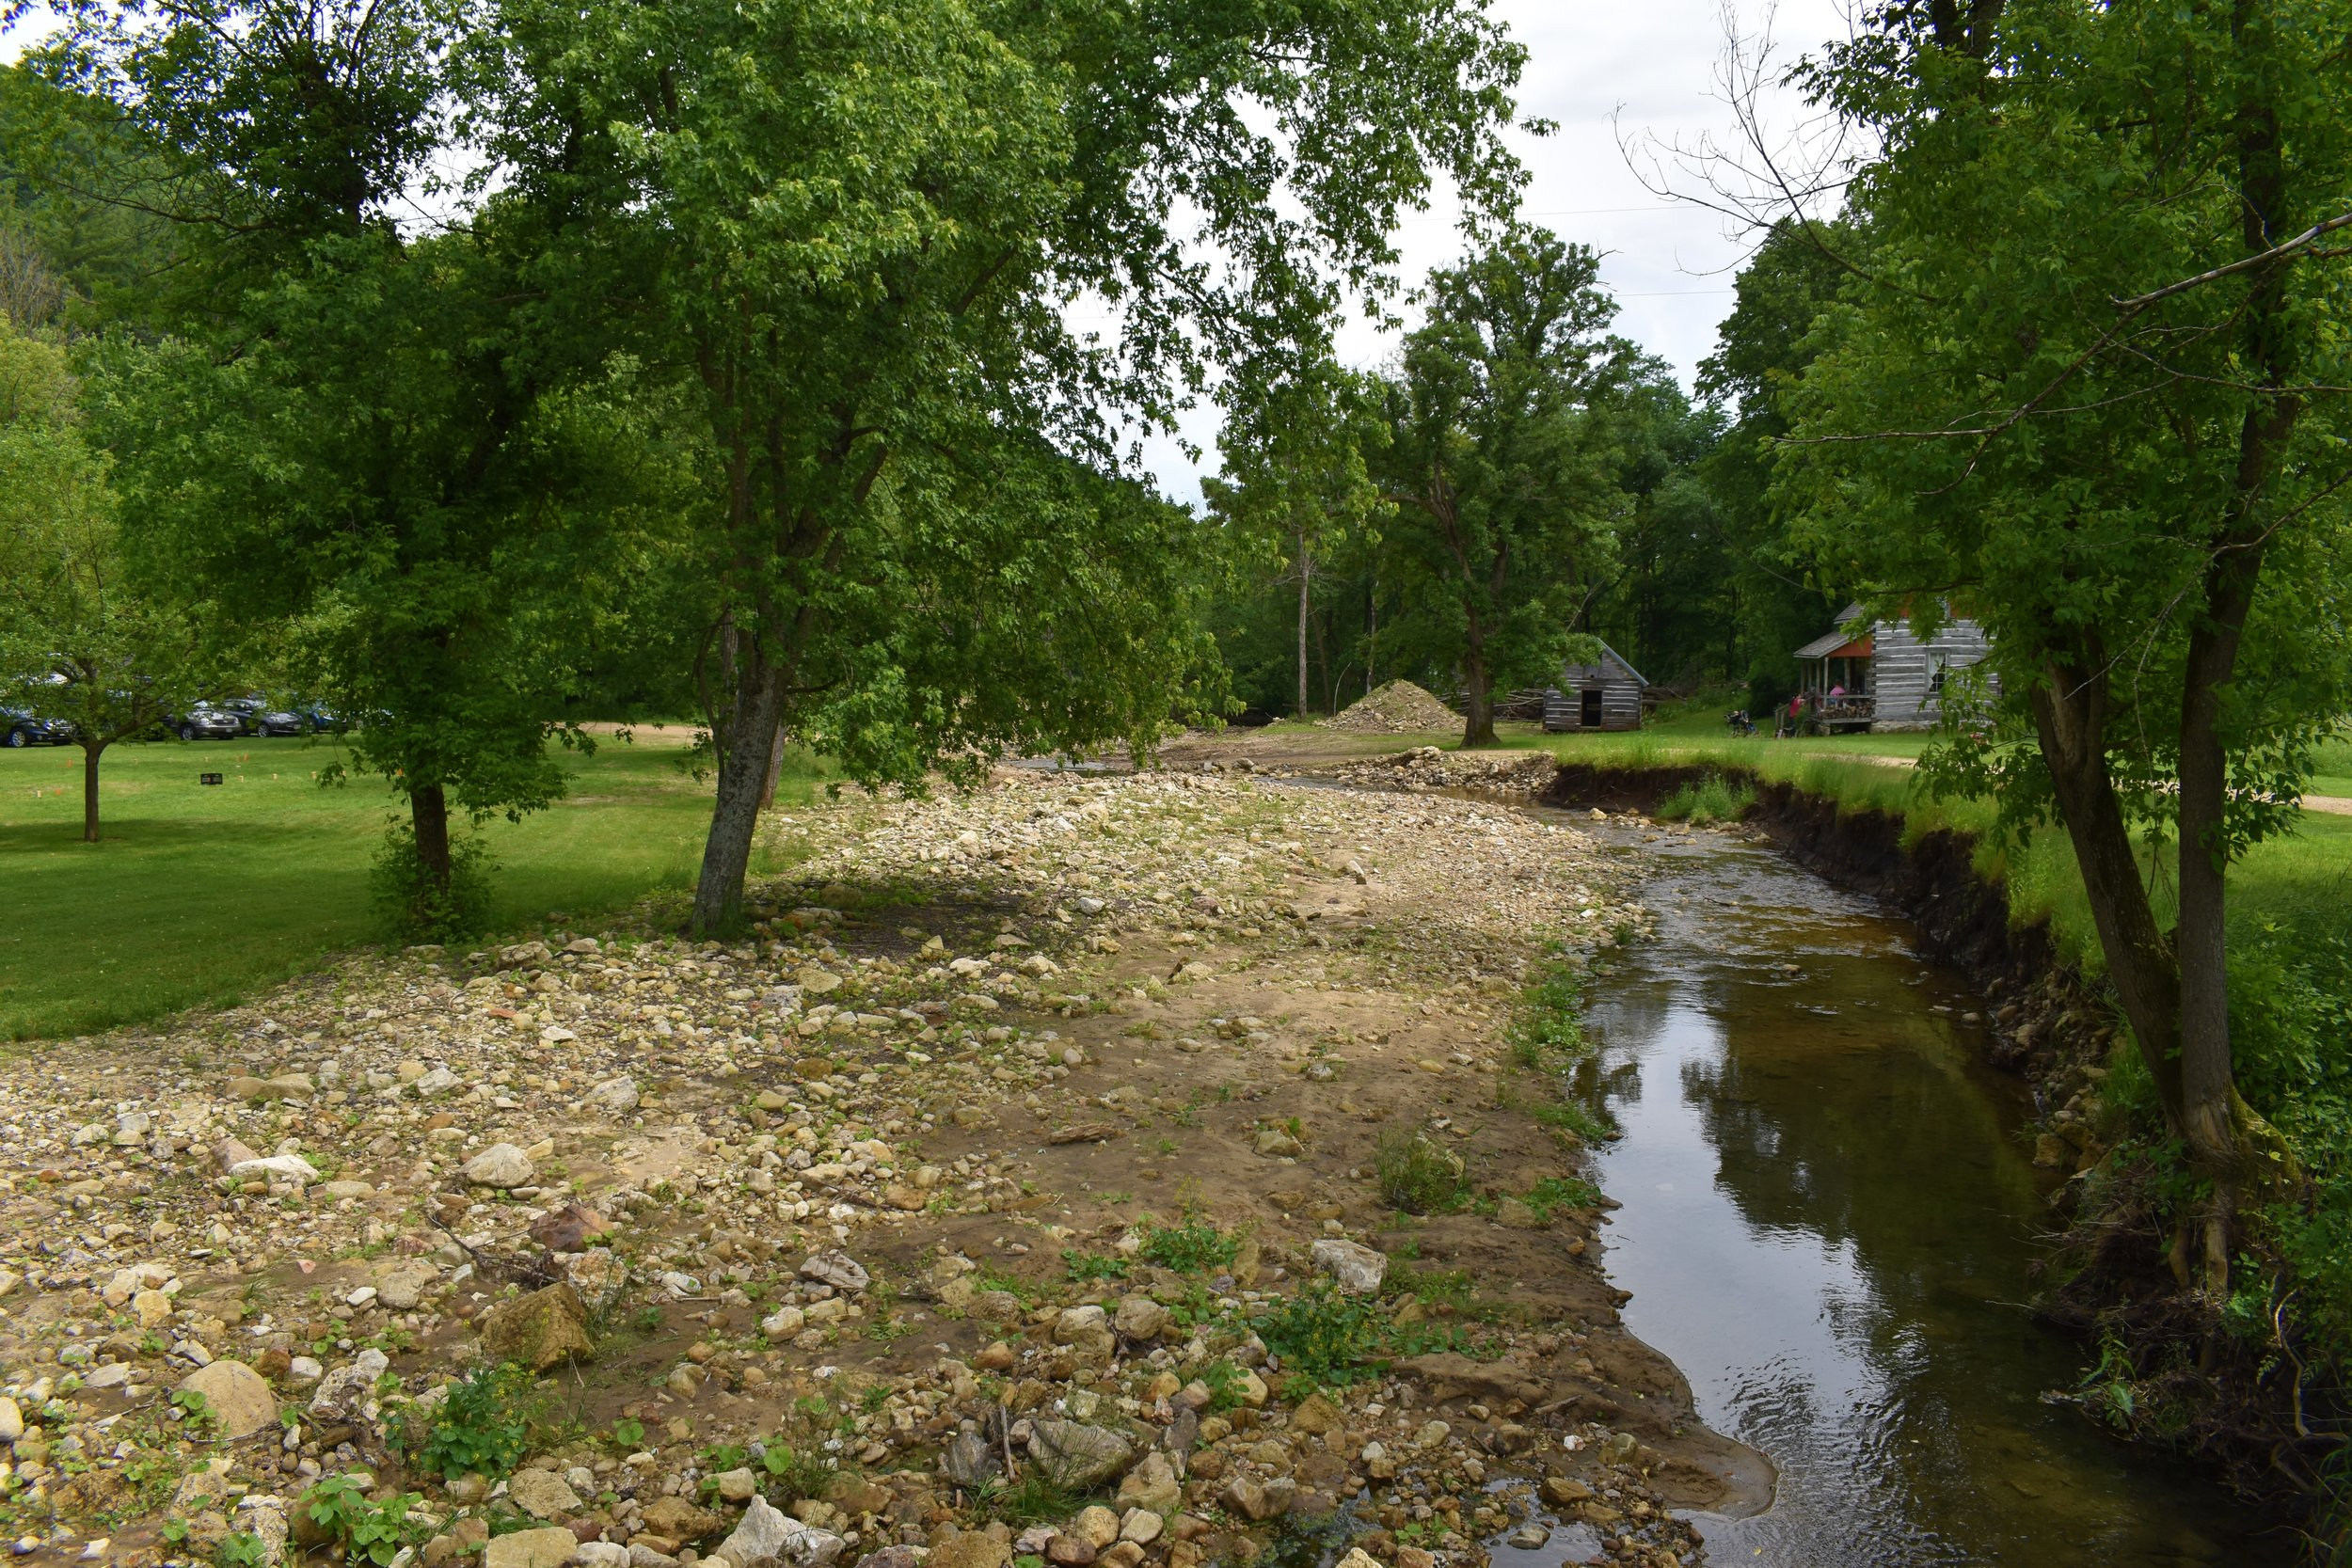 Some of the extensive creek bank damage